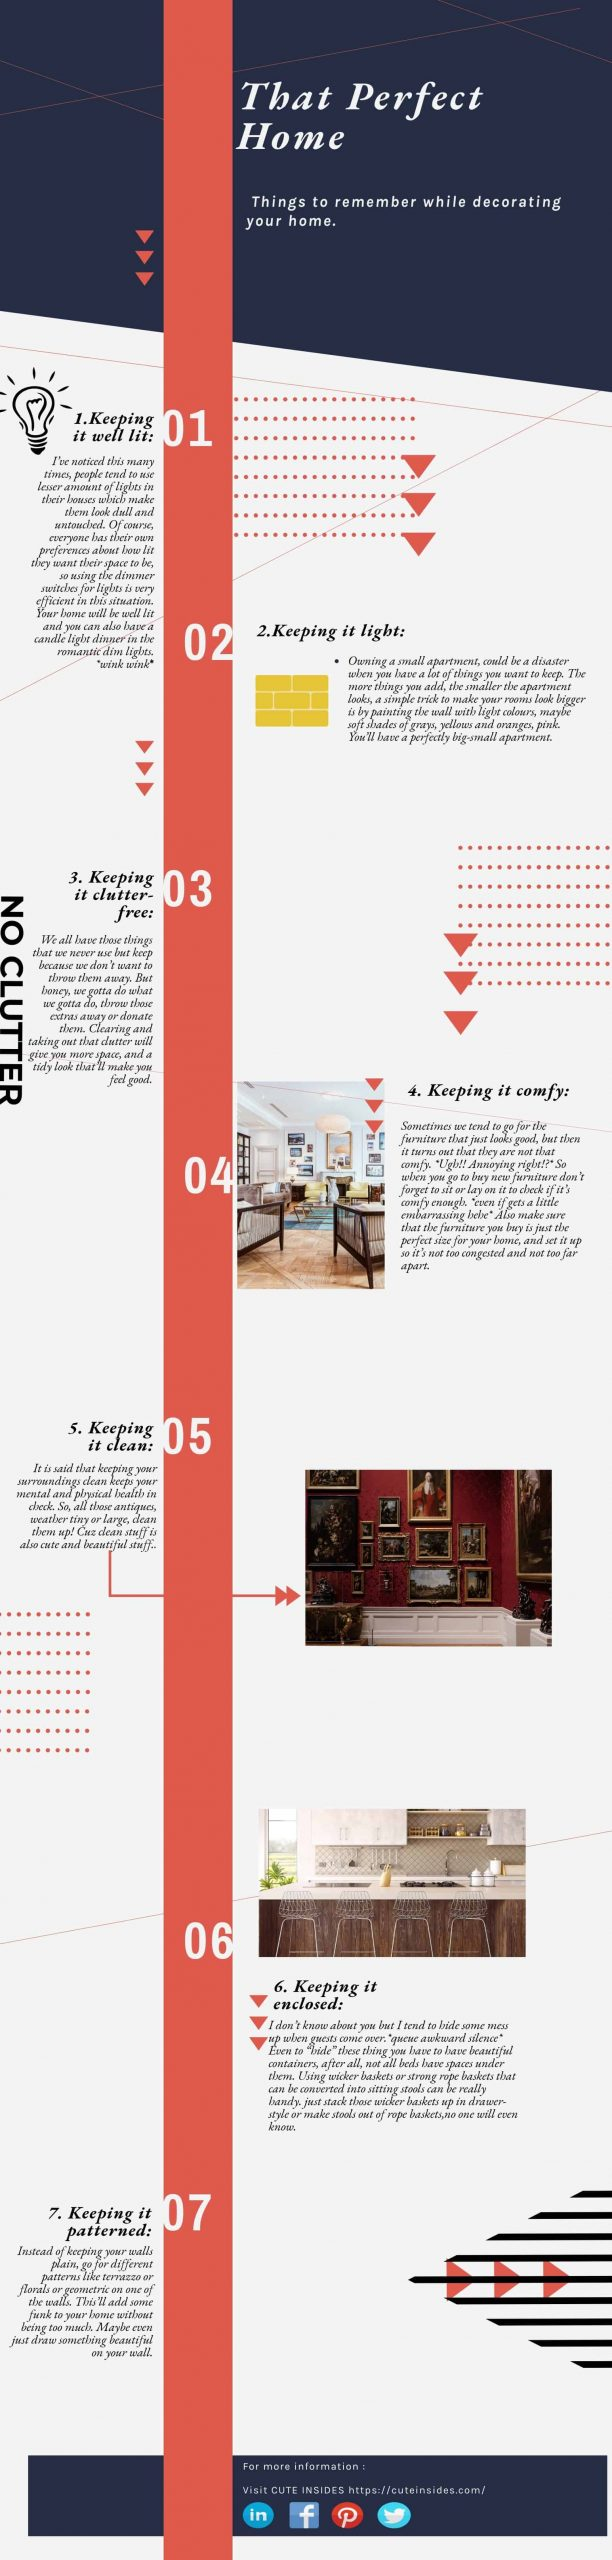 Things to remember while decorating or renovating your home